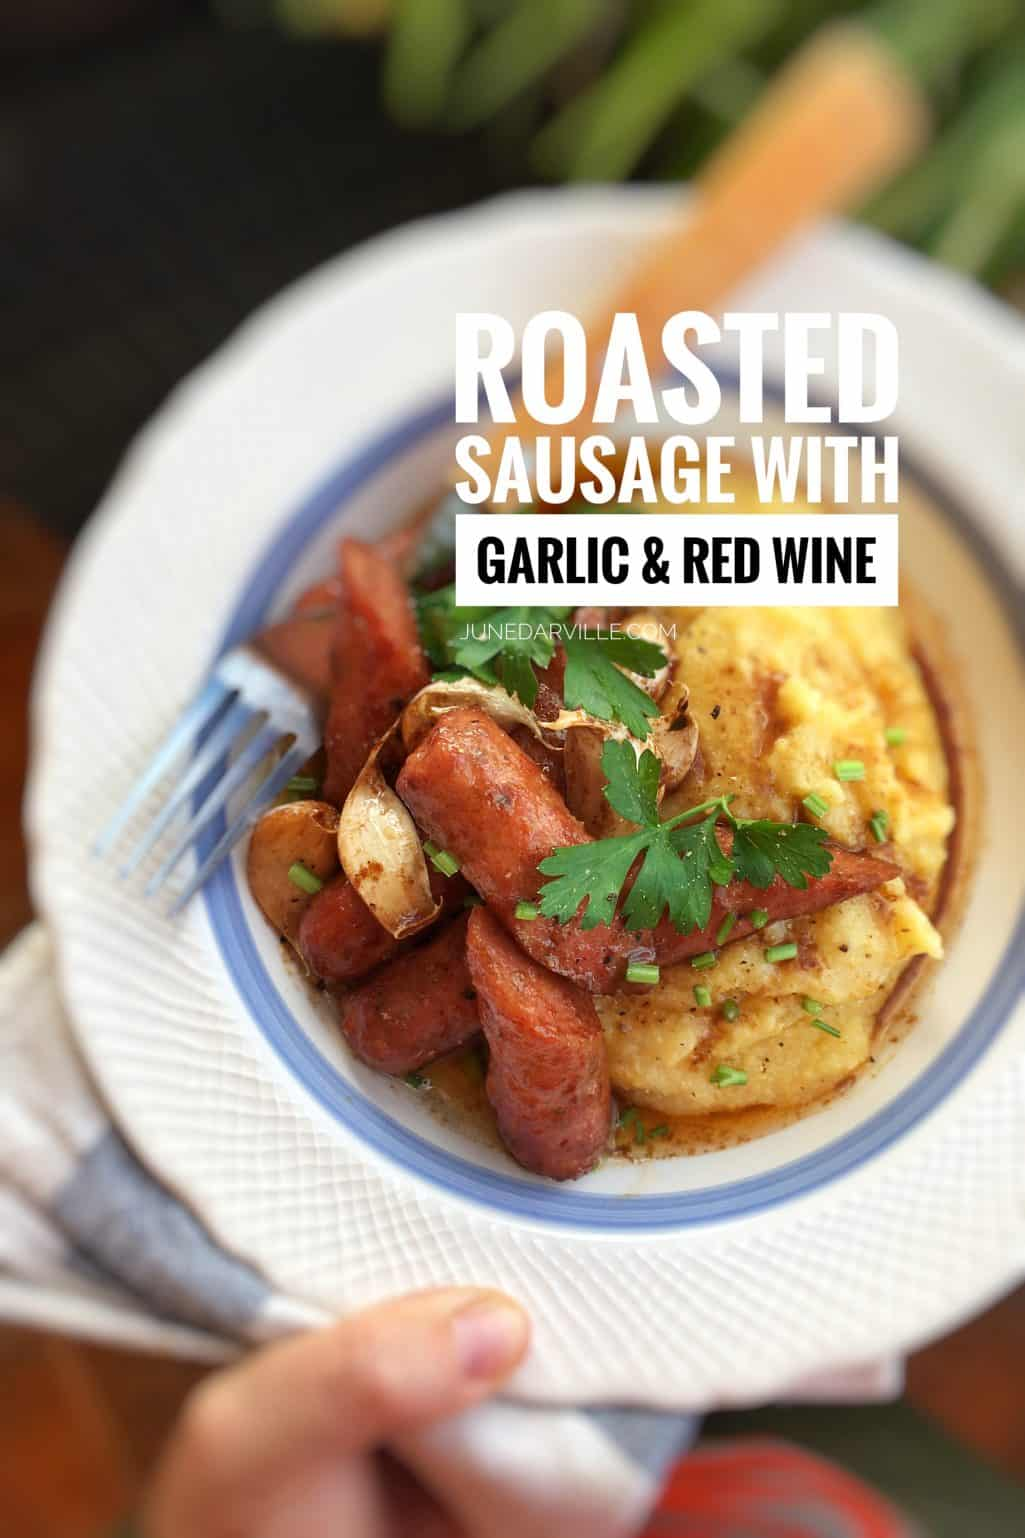 Delicious roasted sausage with soft garlic cloves and red wine... Served over buttery mashed potatoes or creamy polenta: flavor bomb!